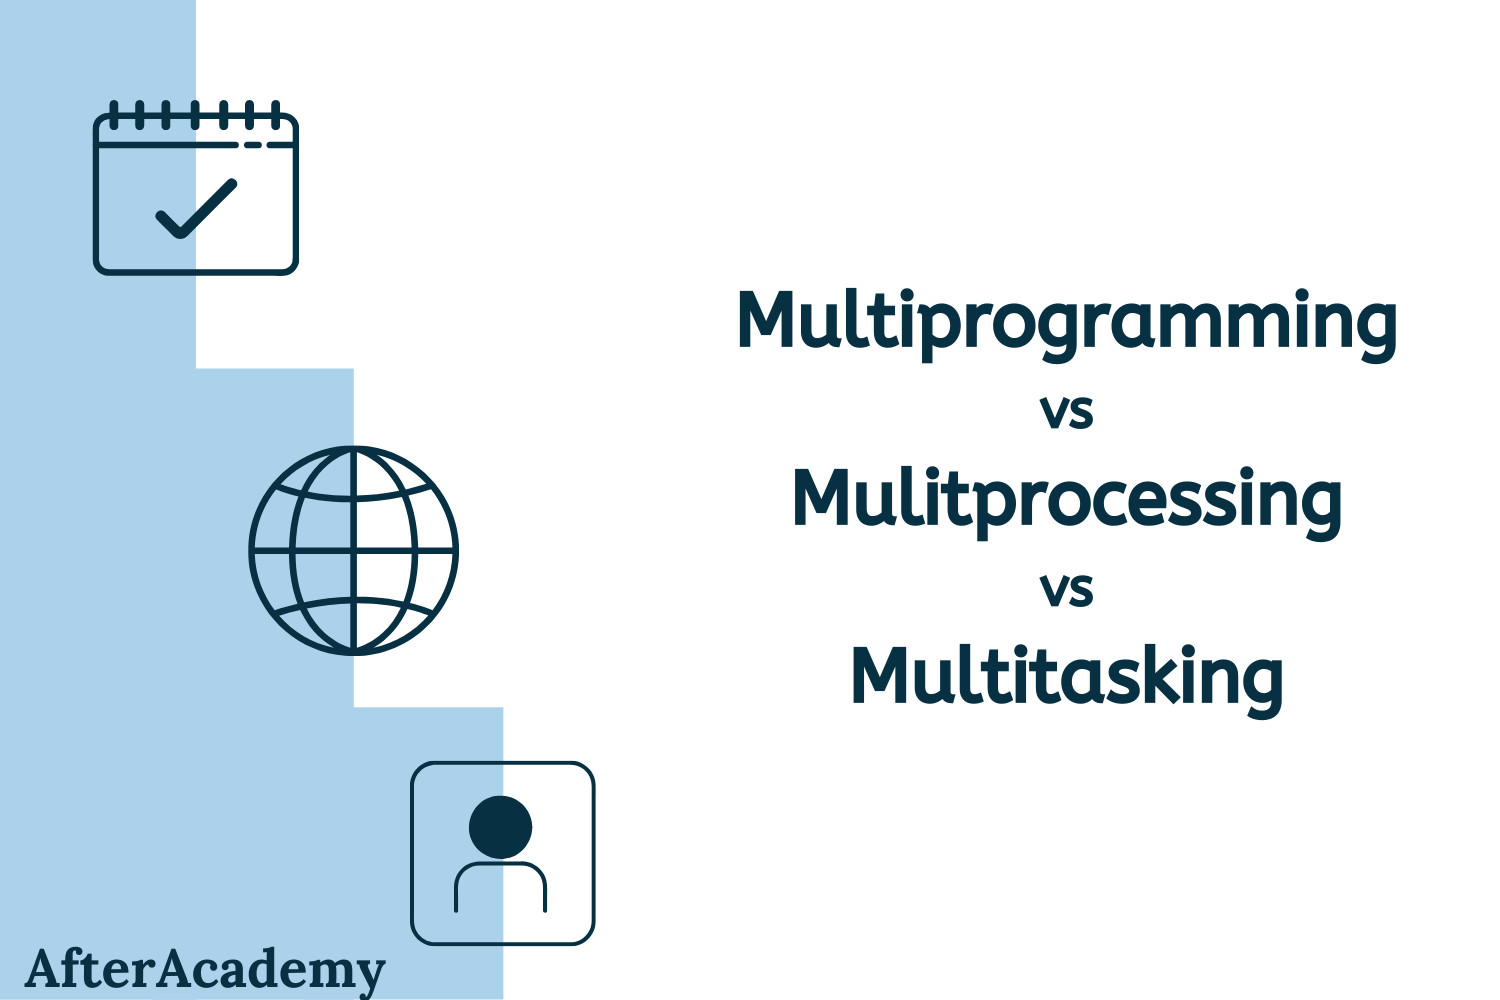 Multiprogramming vs Multiprocessing vs Multitasking